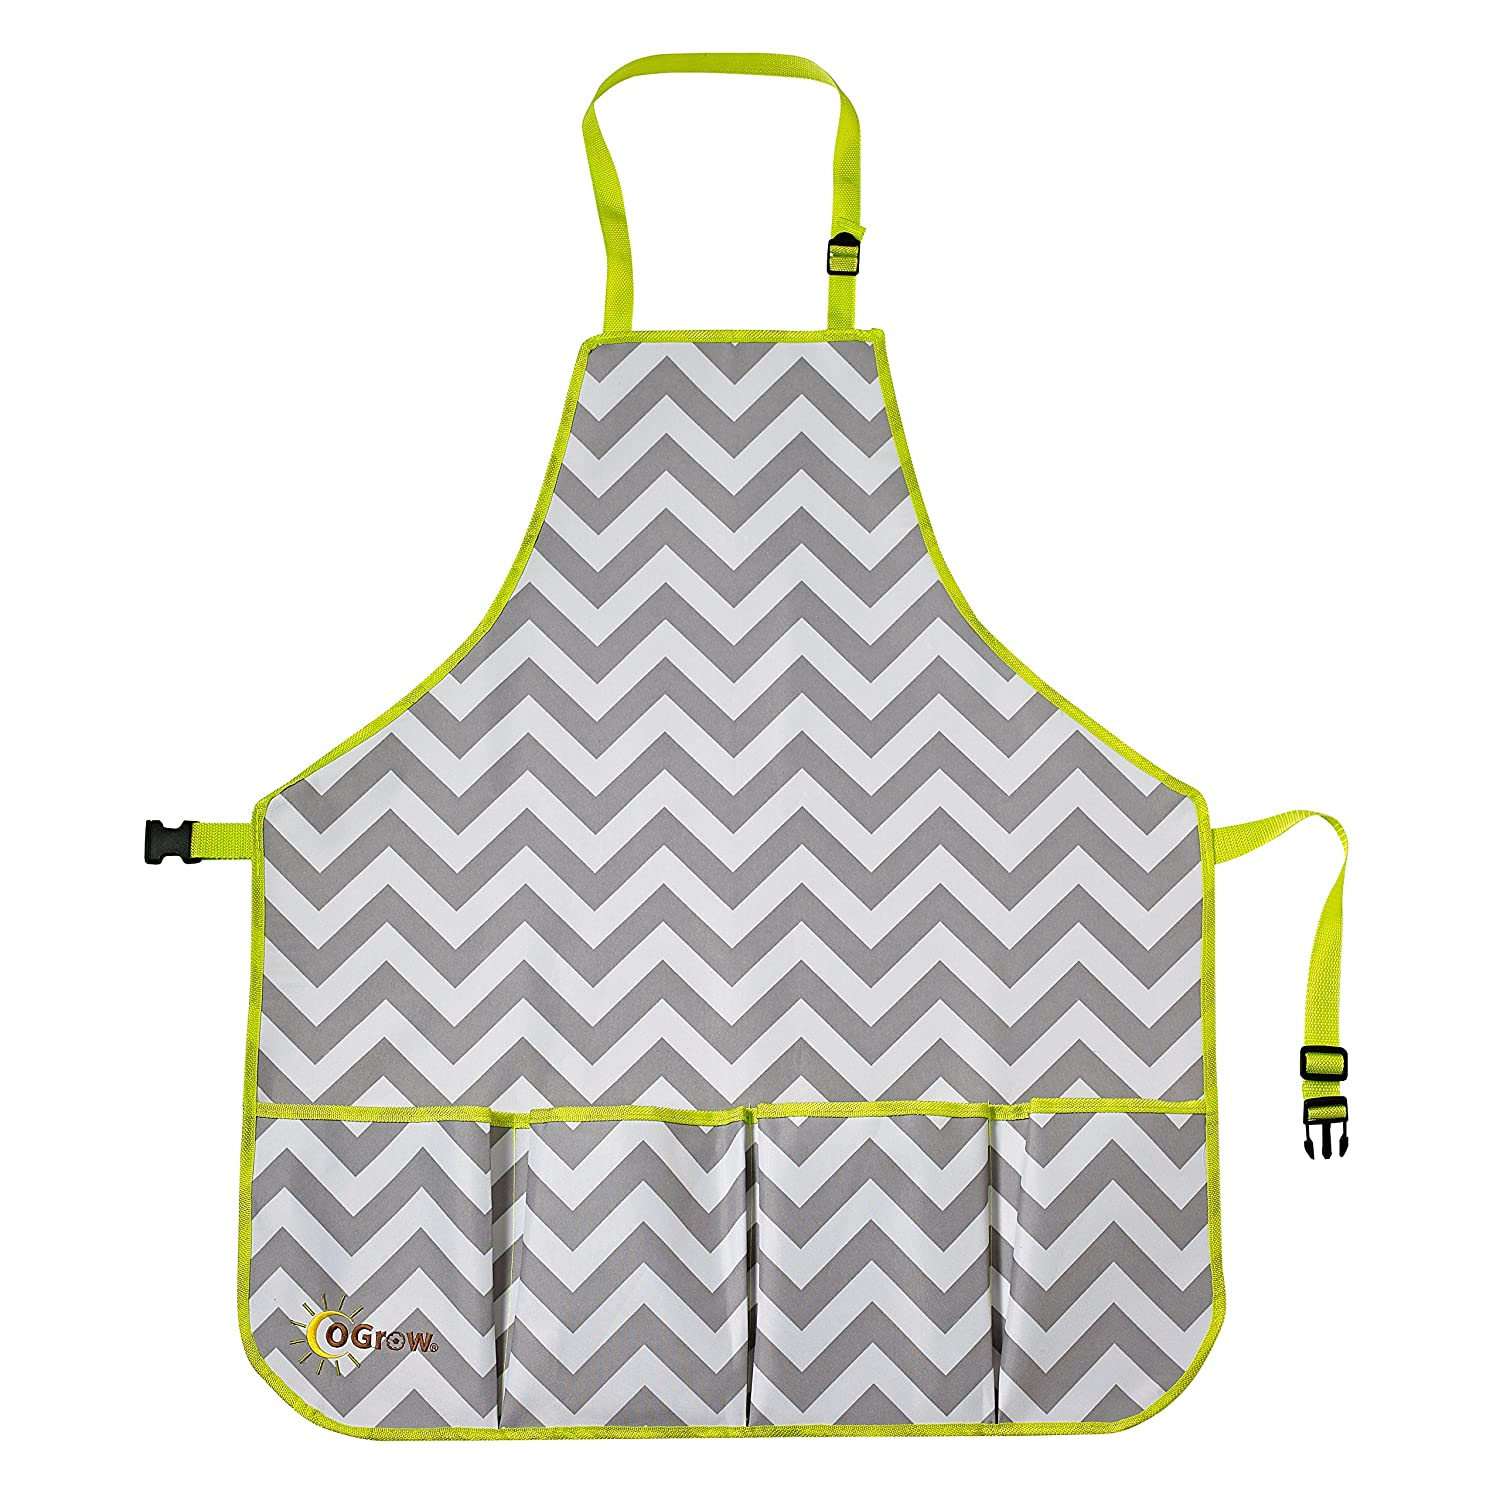 Ogrow High Quality Gardener's Tool Apron with Adjustable Neck and Waist Belts, Grey/White Chevron, Medium